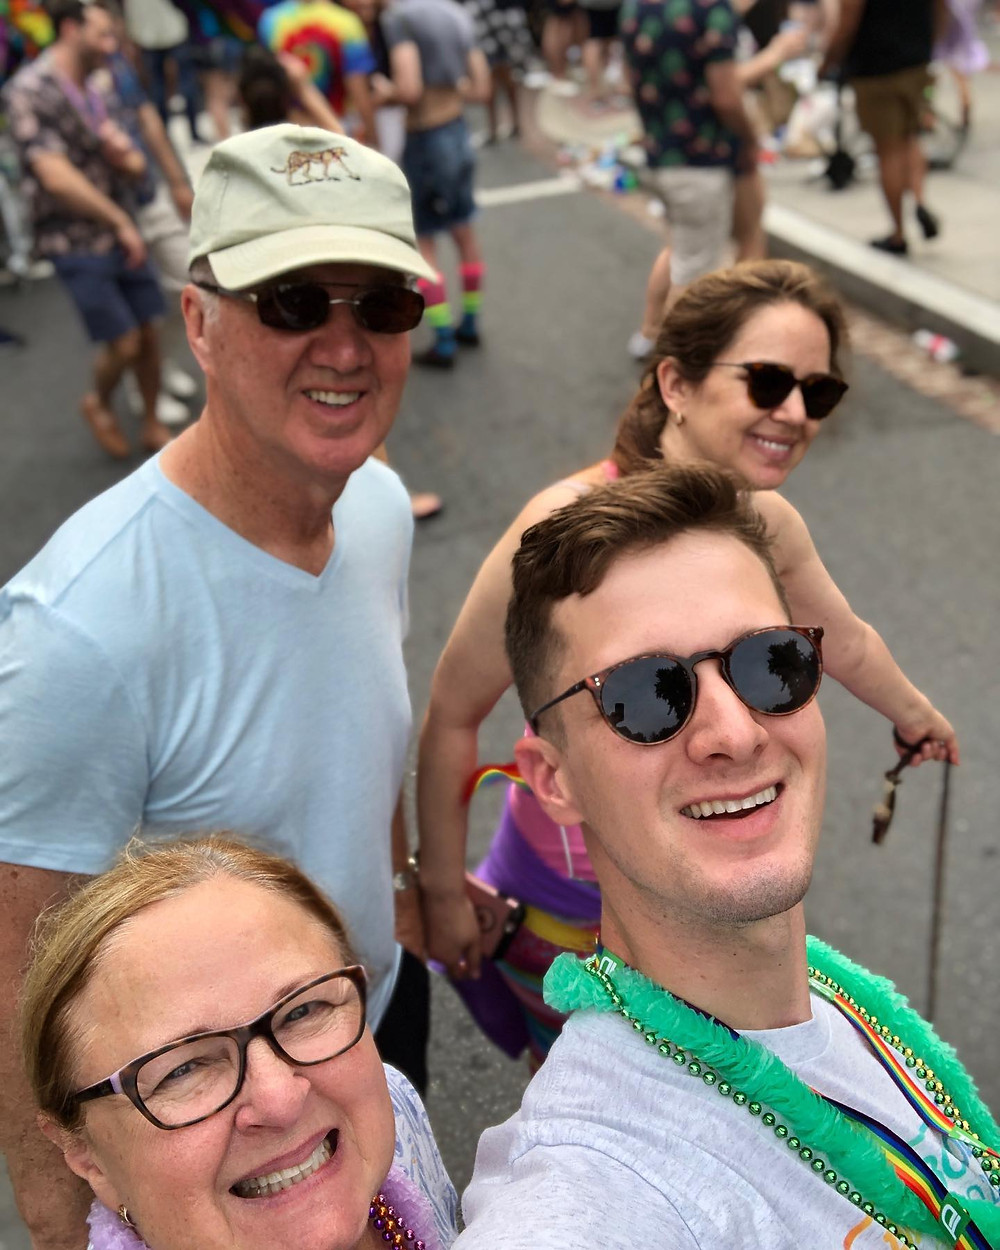 Brother Tim, Mom, Dad, and Kristin all smiling during a selfie at the Pride Parade.